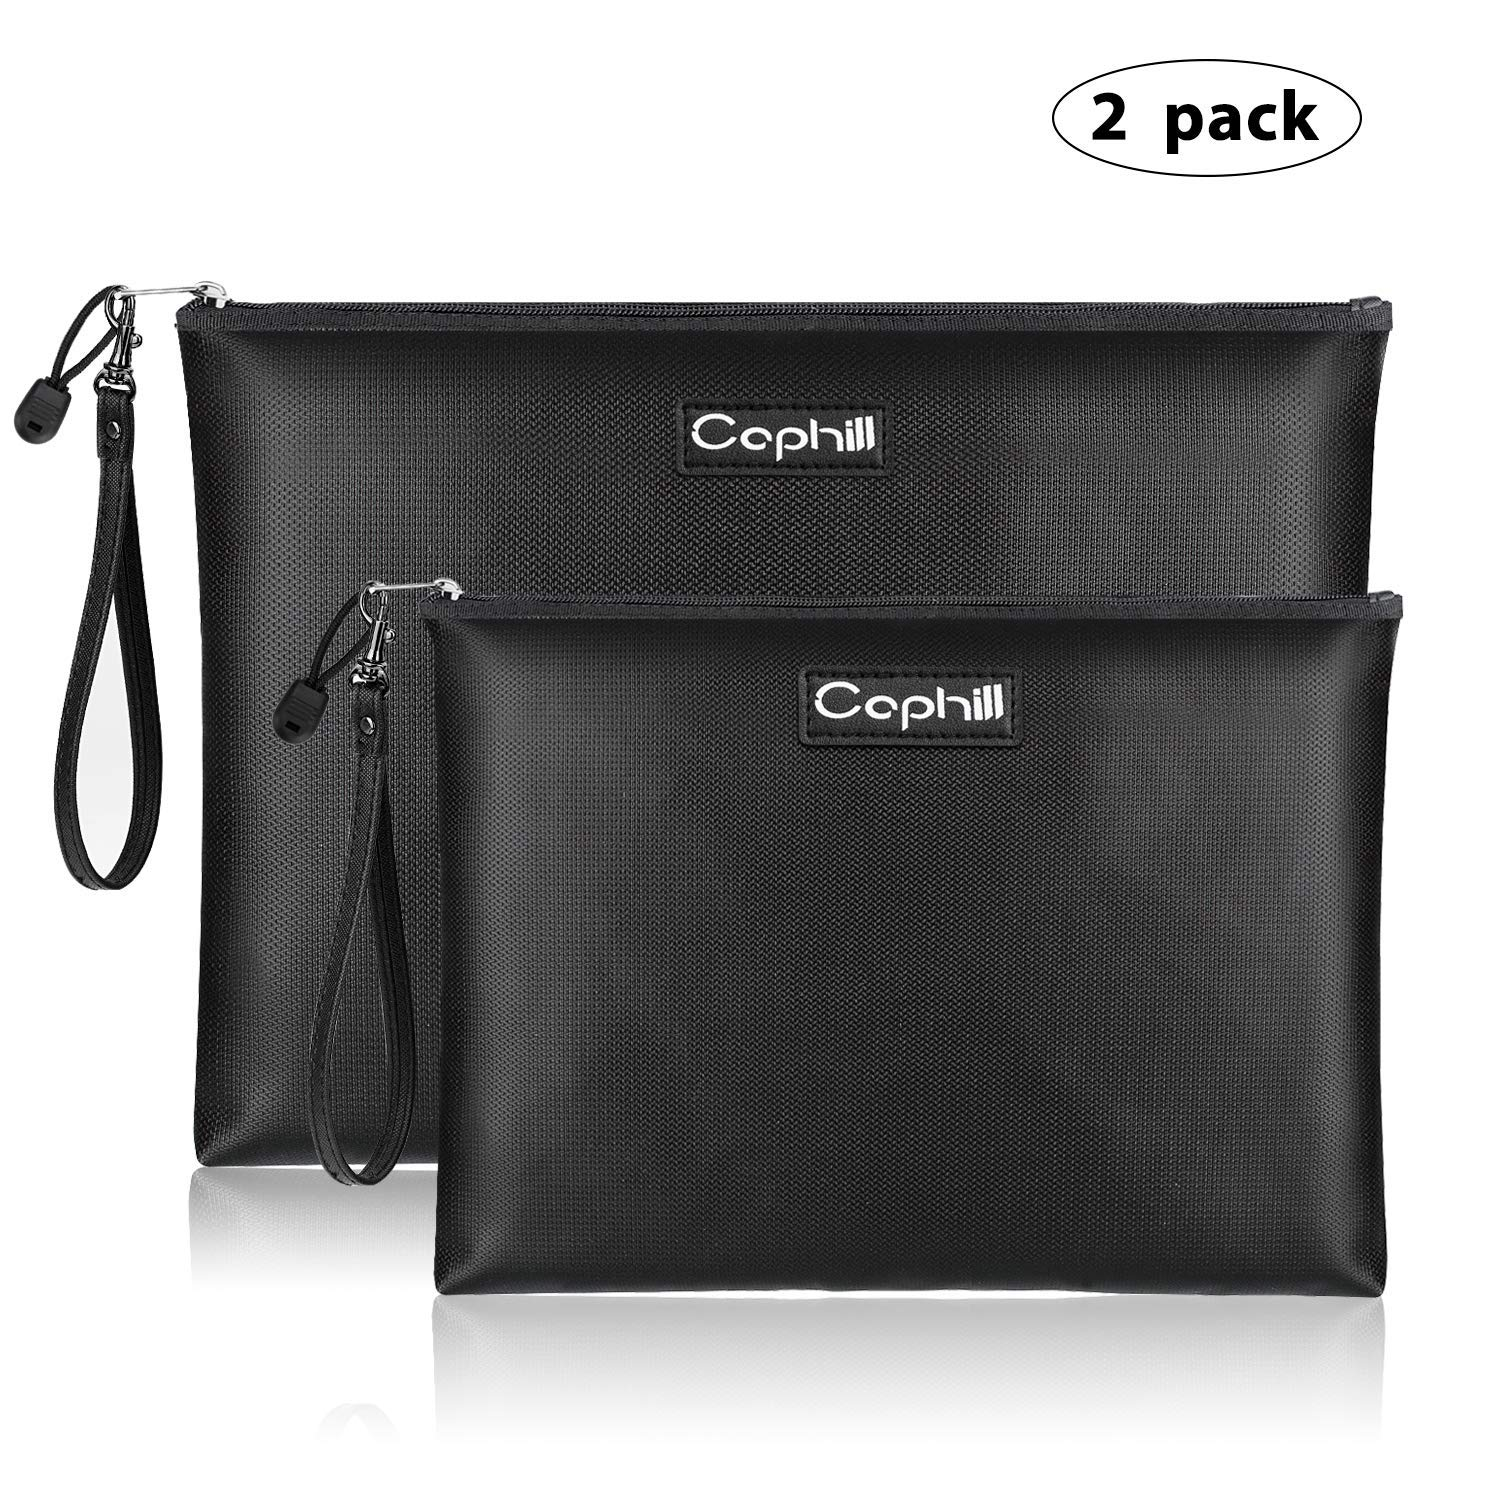 Fireproof Document Bags, Waterproof and Fireproof Money Bag with Zipper, Storage Pouch for Documents with Strap, Portable 2 Sizes, Money Safe Bags, Bank Deposit Bags for Money and Cash and Coin by Caphill